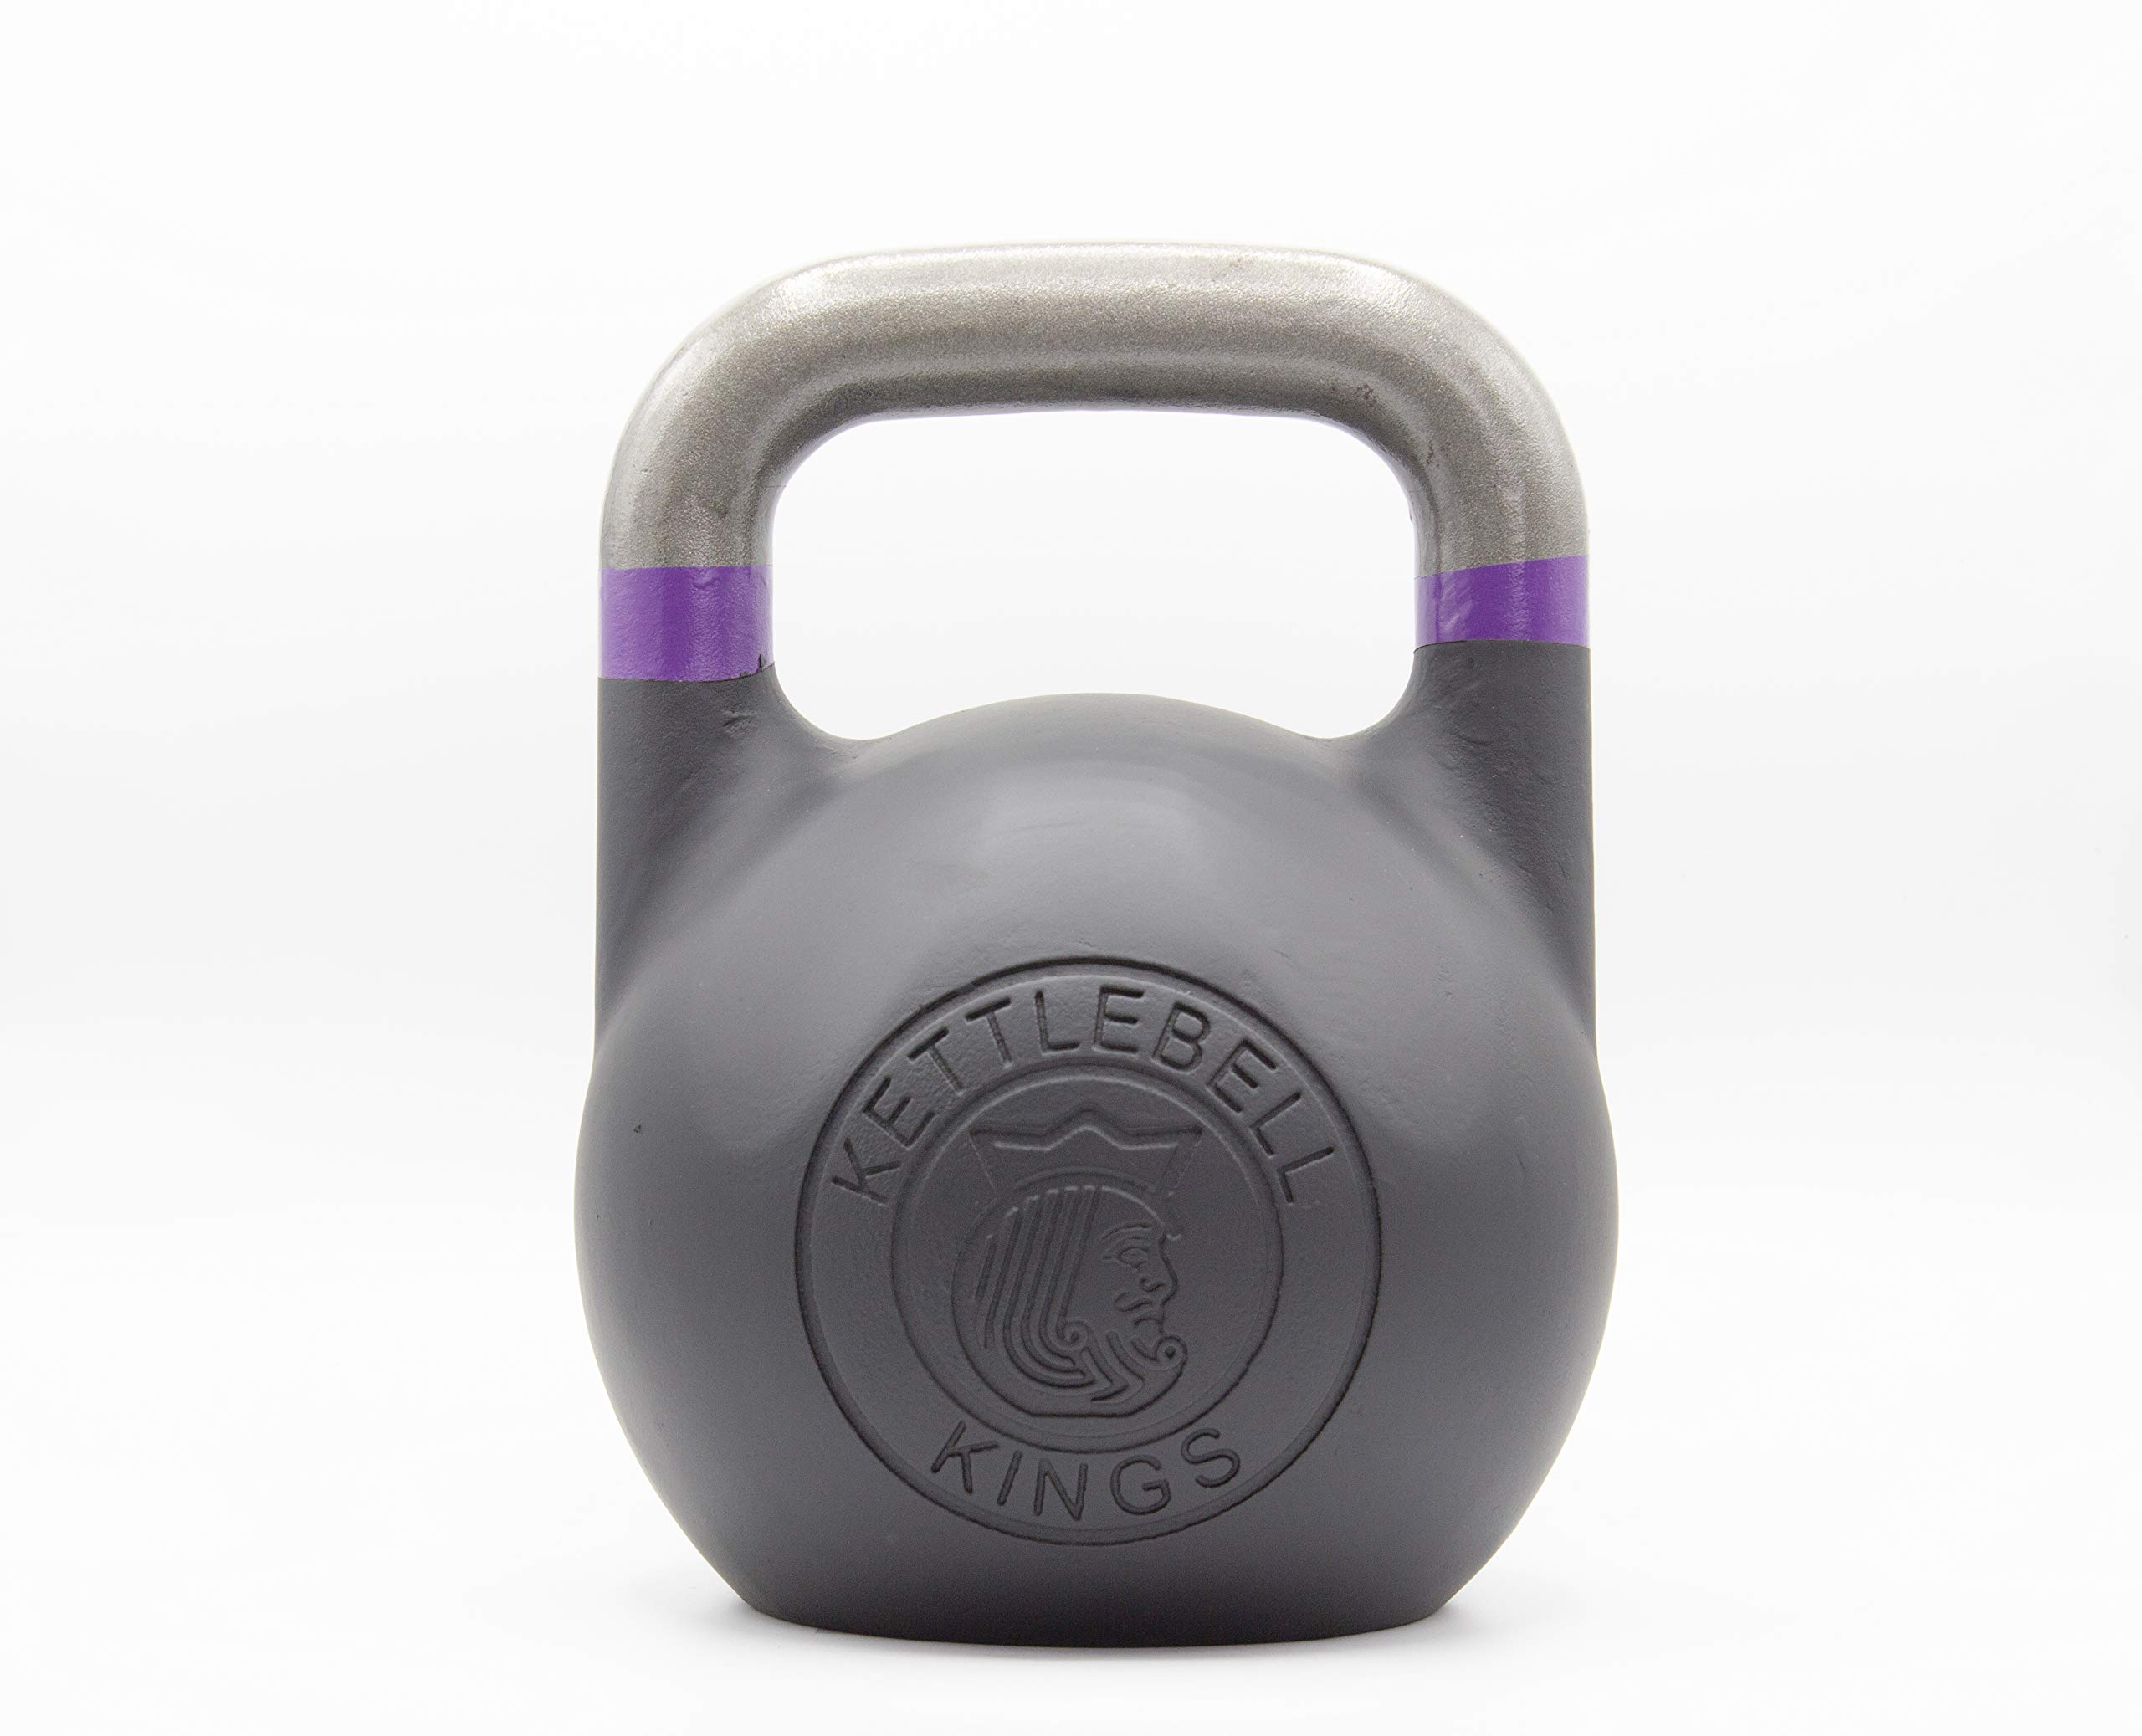 Kettlebell Kings | Kettlebell Weights | Competition Kettlebell Weight Sets for Women & Men | Built in American Style | Same Size & Dimension Across All Weights (45)